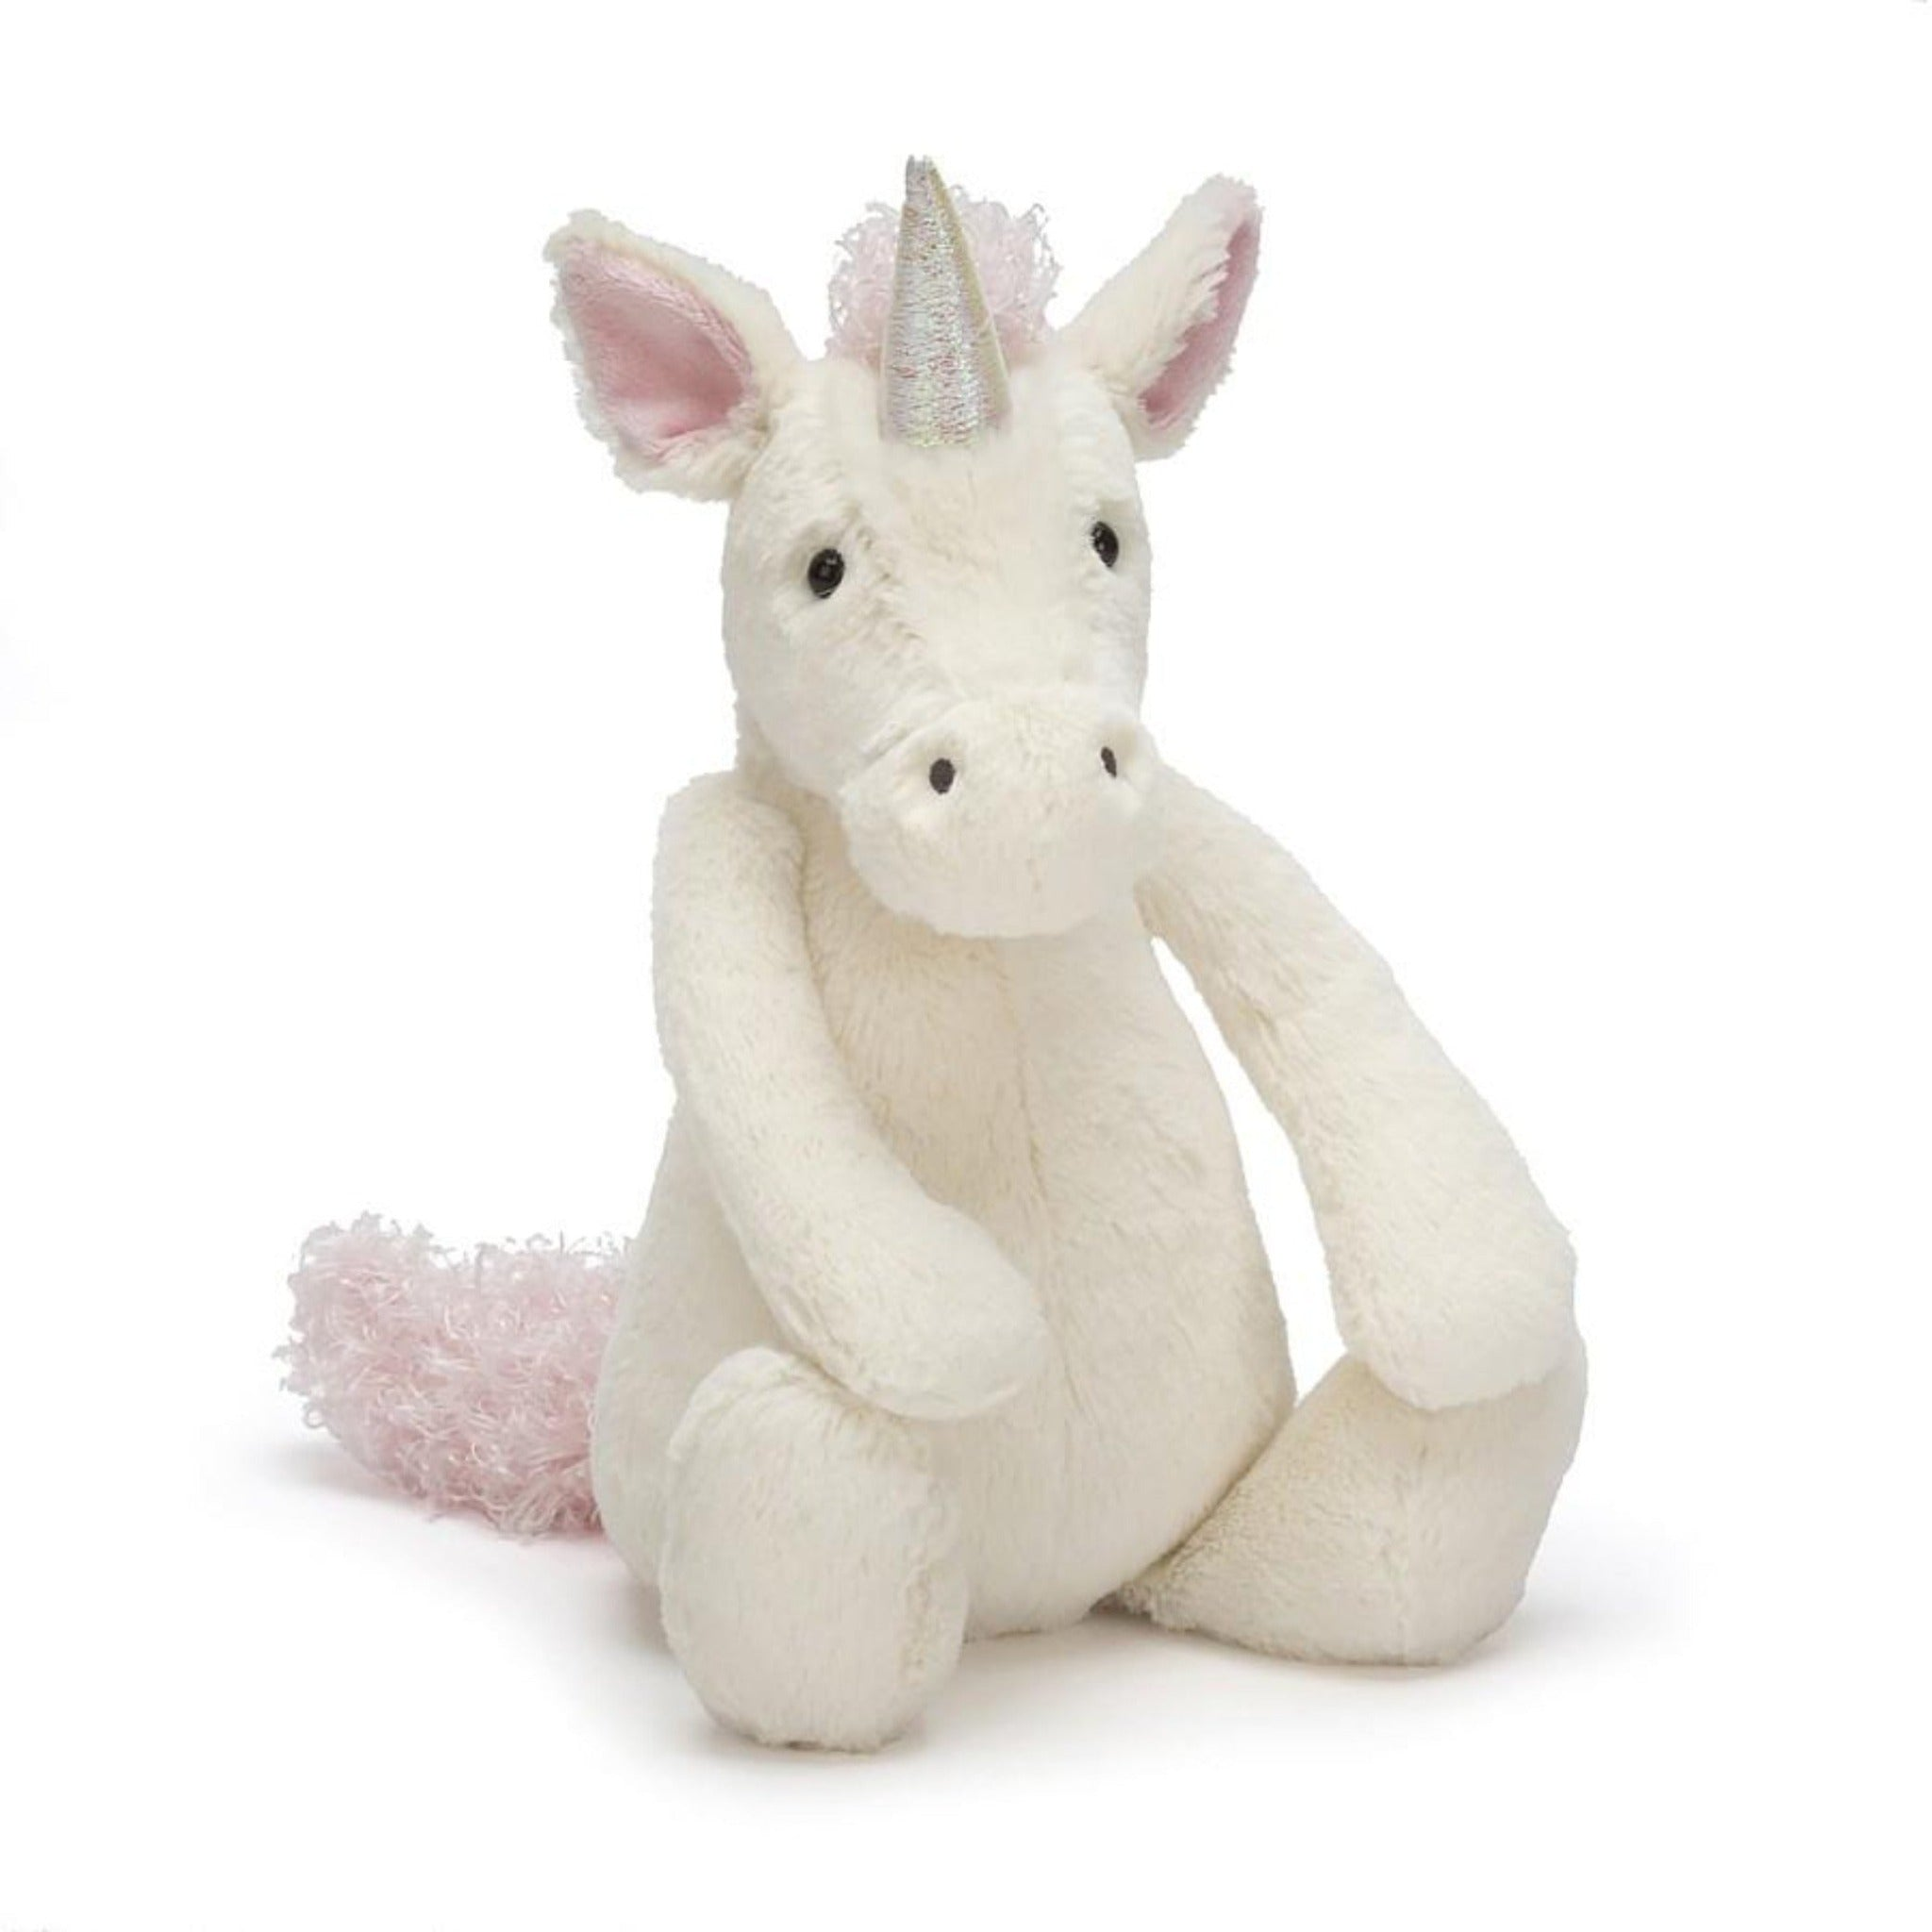 JellyCat plush white small unicorn toy